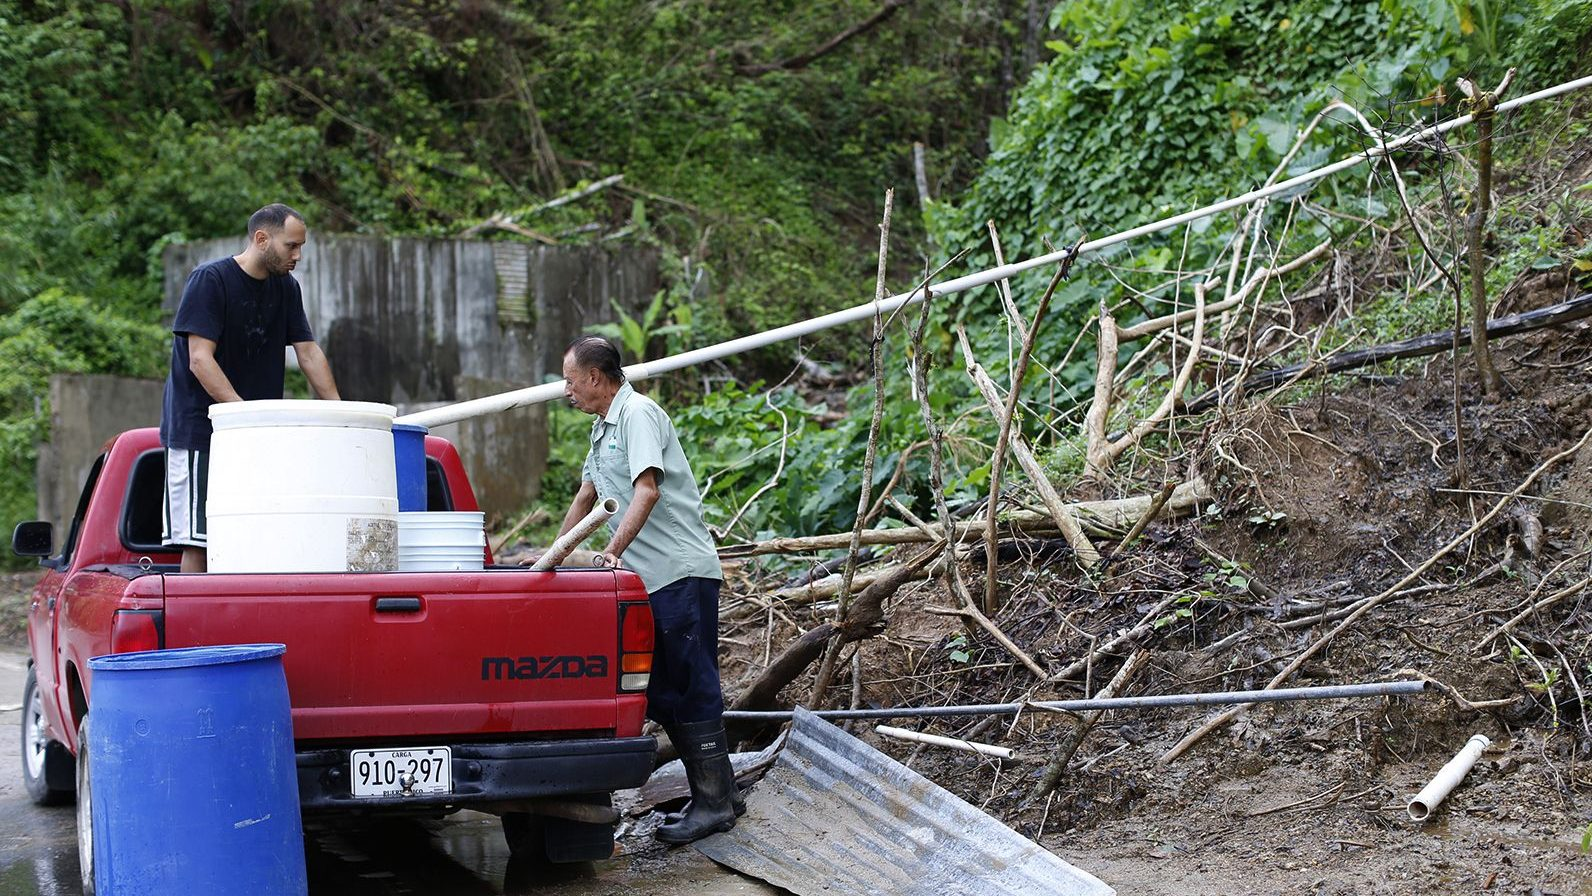 puerto ricans without water service collect mountain runoff